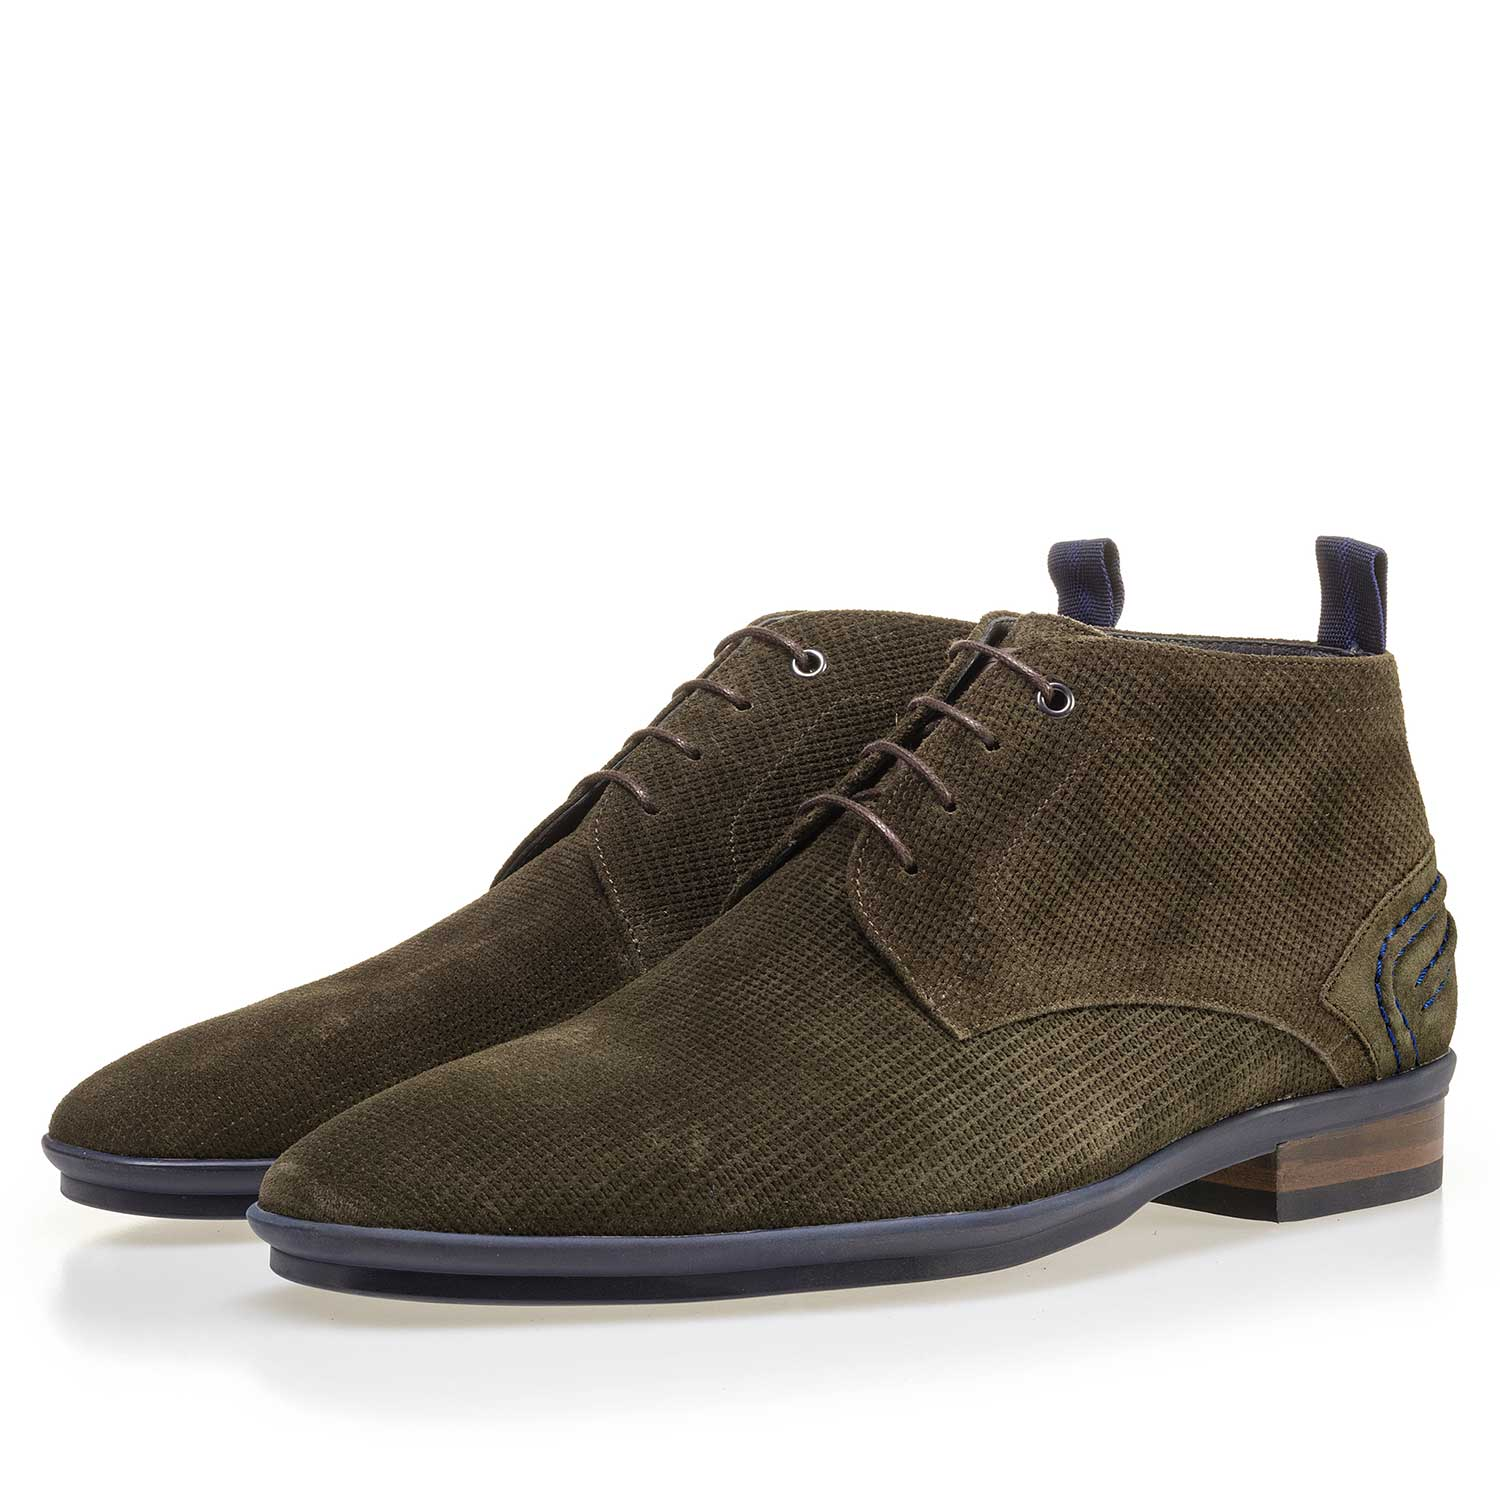 10960/15 - Olive green suede leather lace boot with pattern